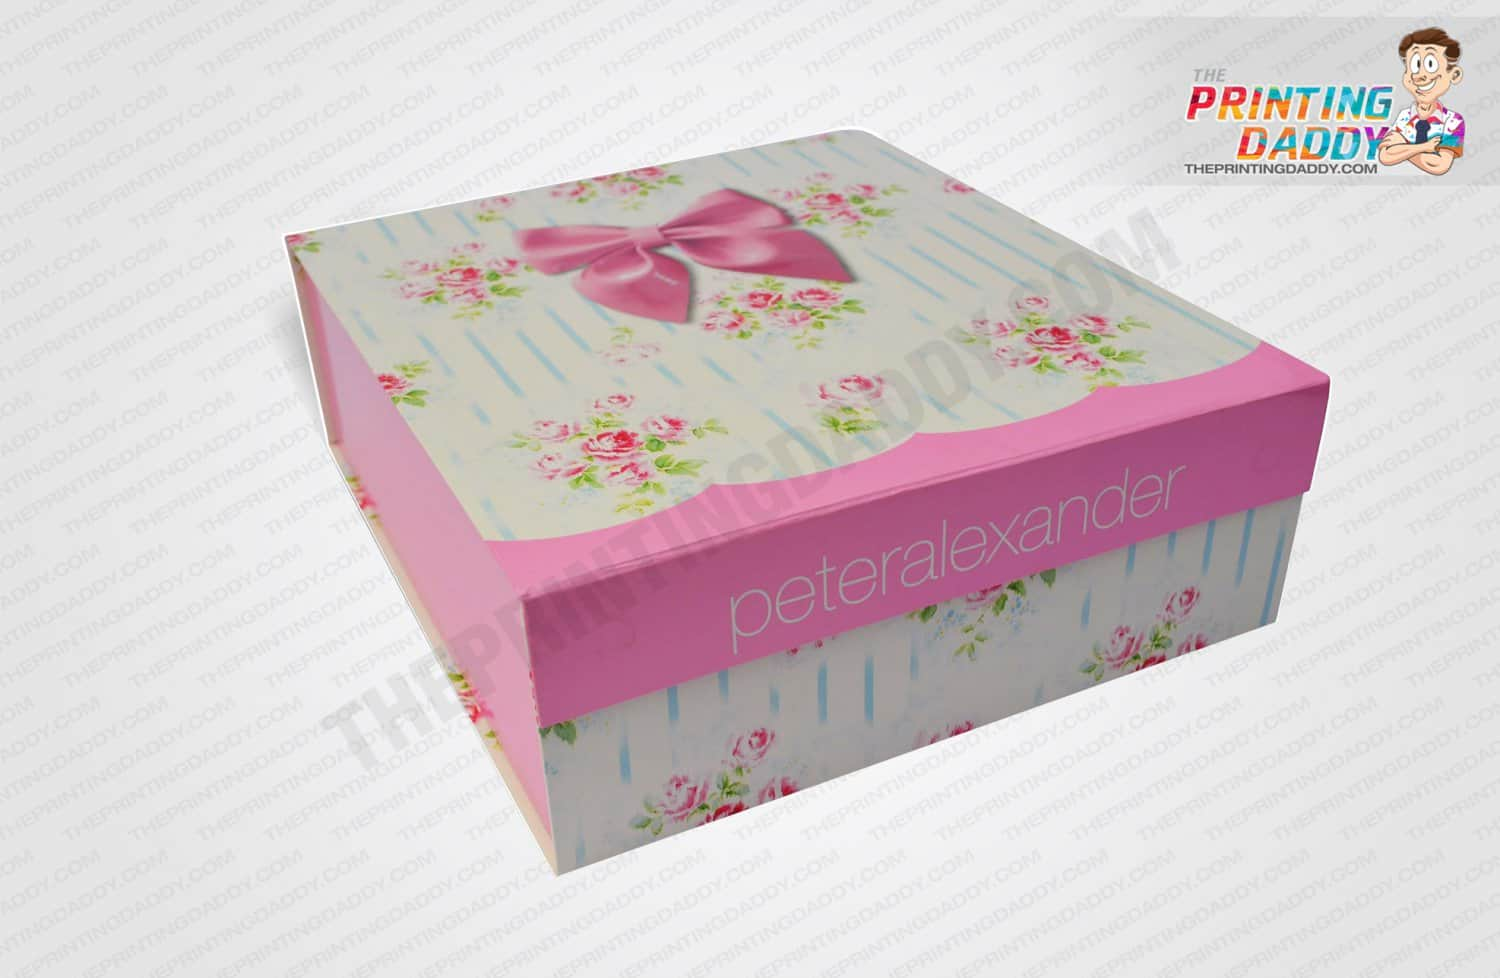 Floral Print Pillow Box The Printing Daddy